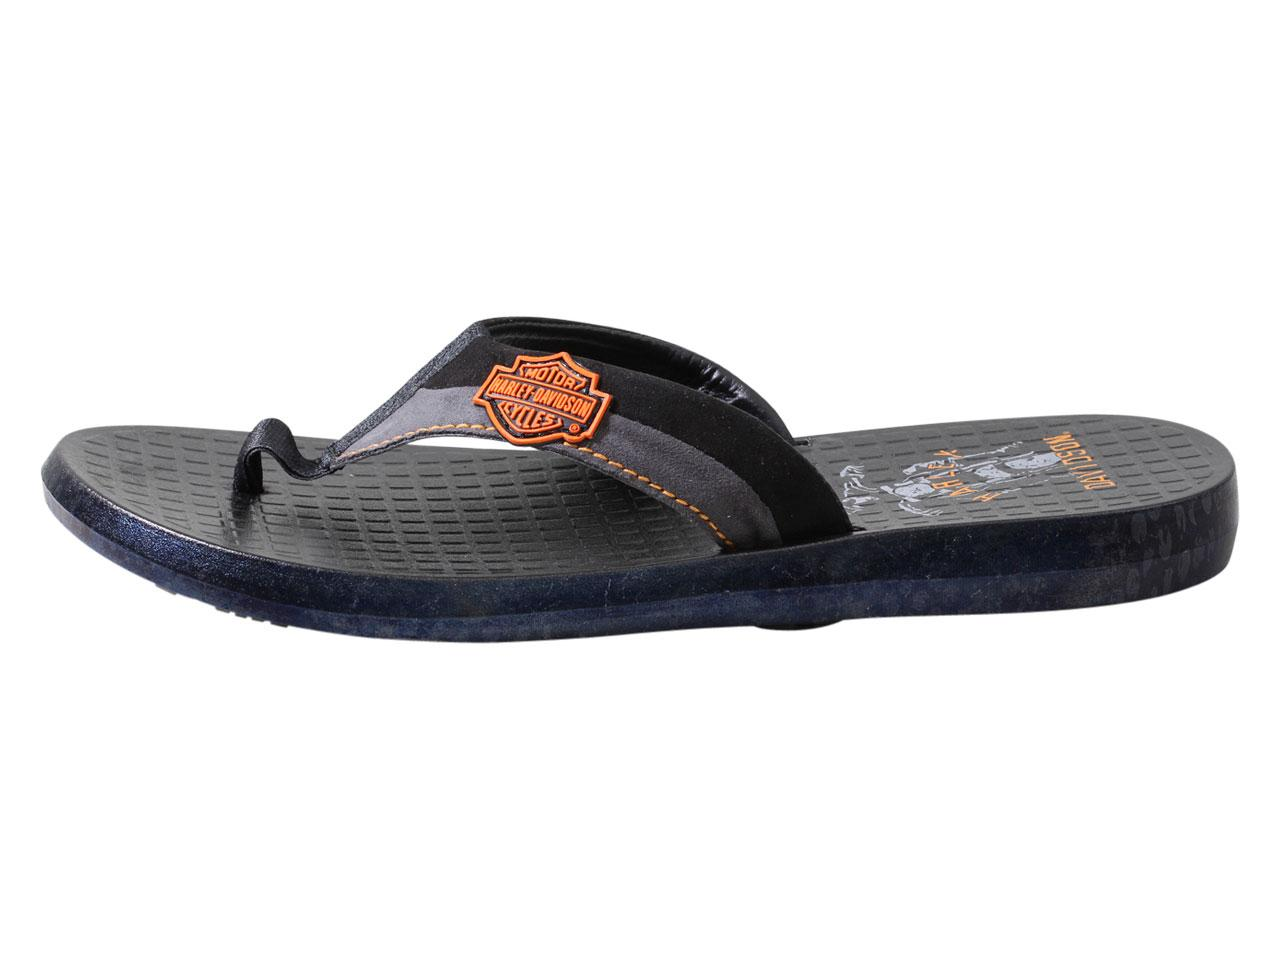 db75381700a29 ... Men s Adams Flip Flops Sandals Shoes by Harley-Davidson. 1234567